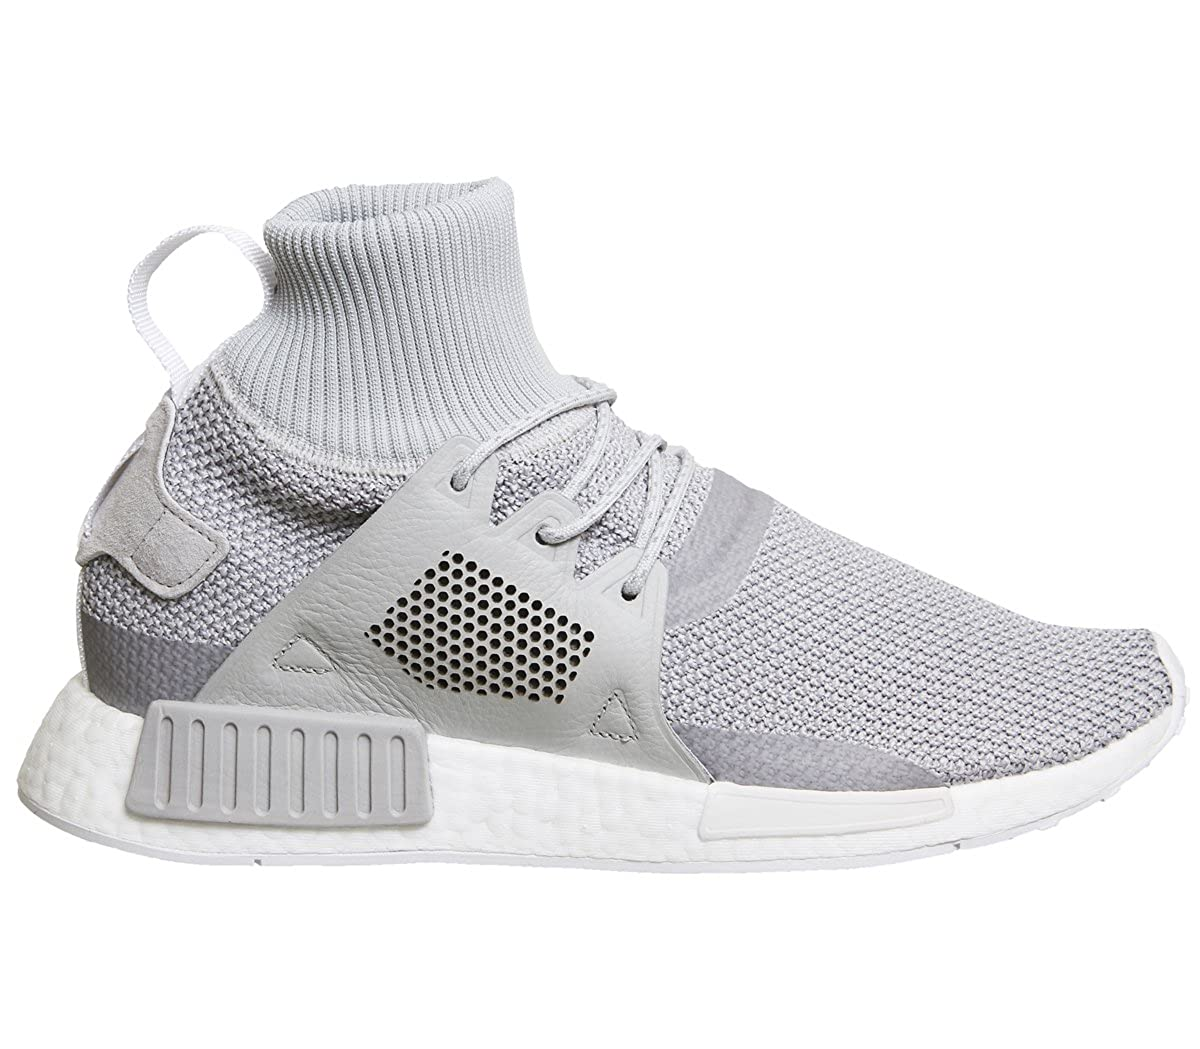 Image of adidas Originals Men's NMD_Xr1 Winter Trainers Fashion Sneakers